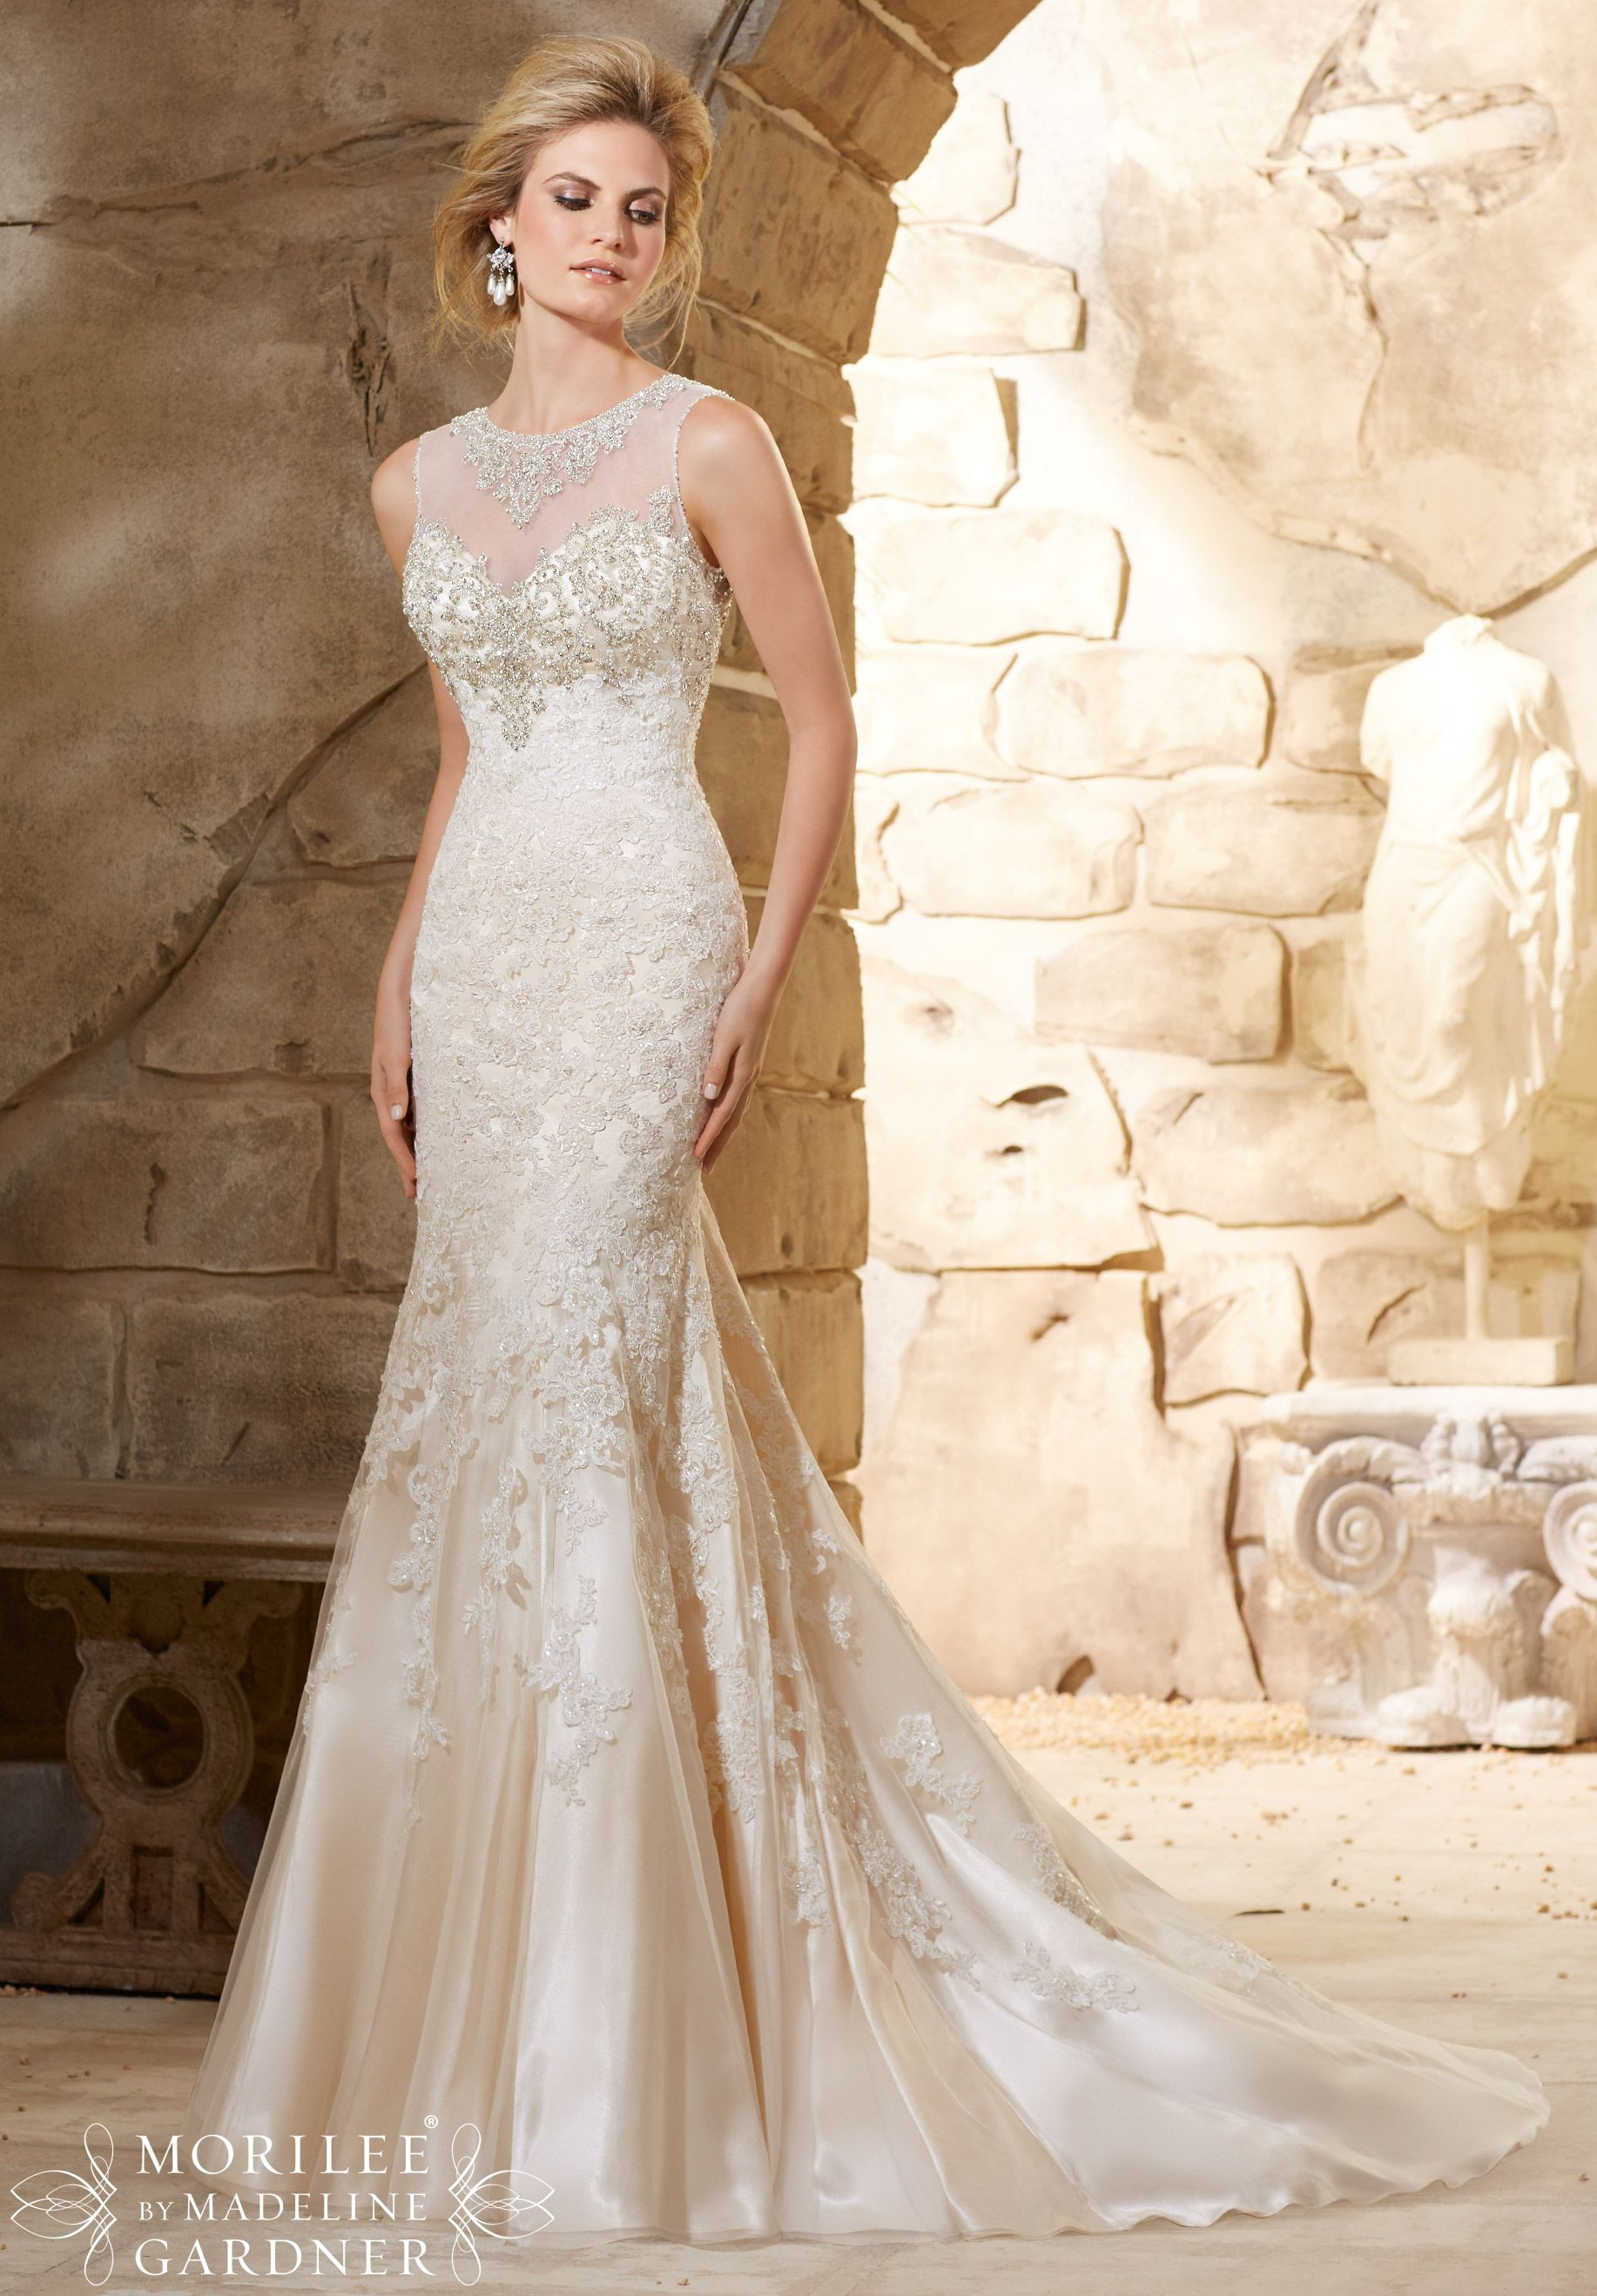 Amazing Wedding Dresses Bridal Gowns Wedding Gowns by Designer Morilee Dress Style